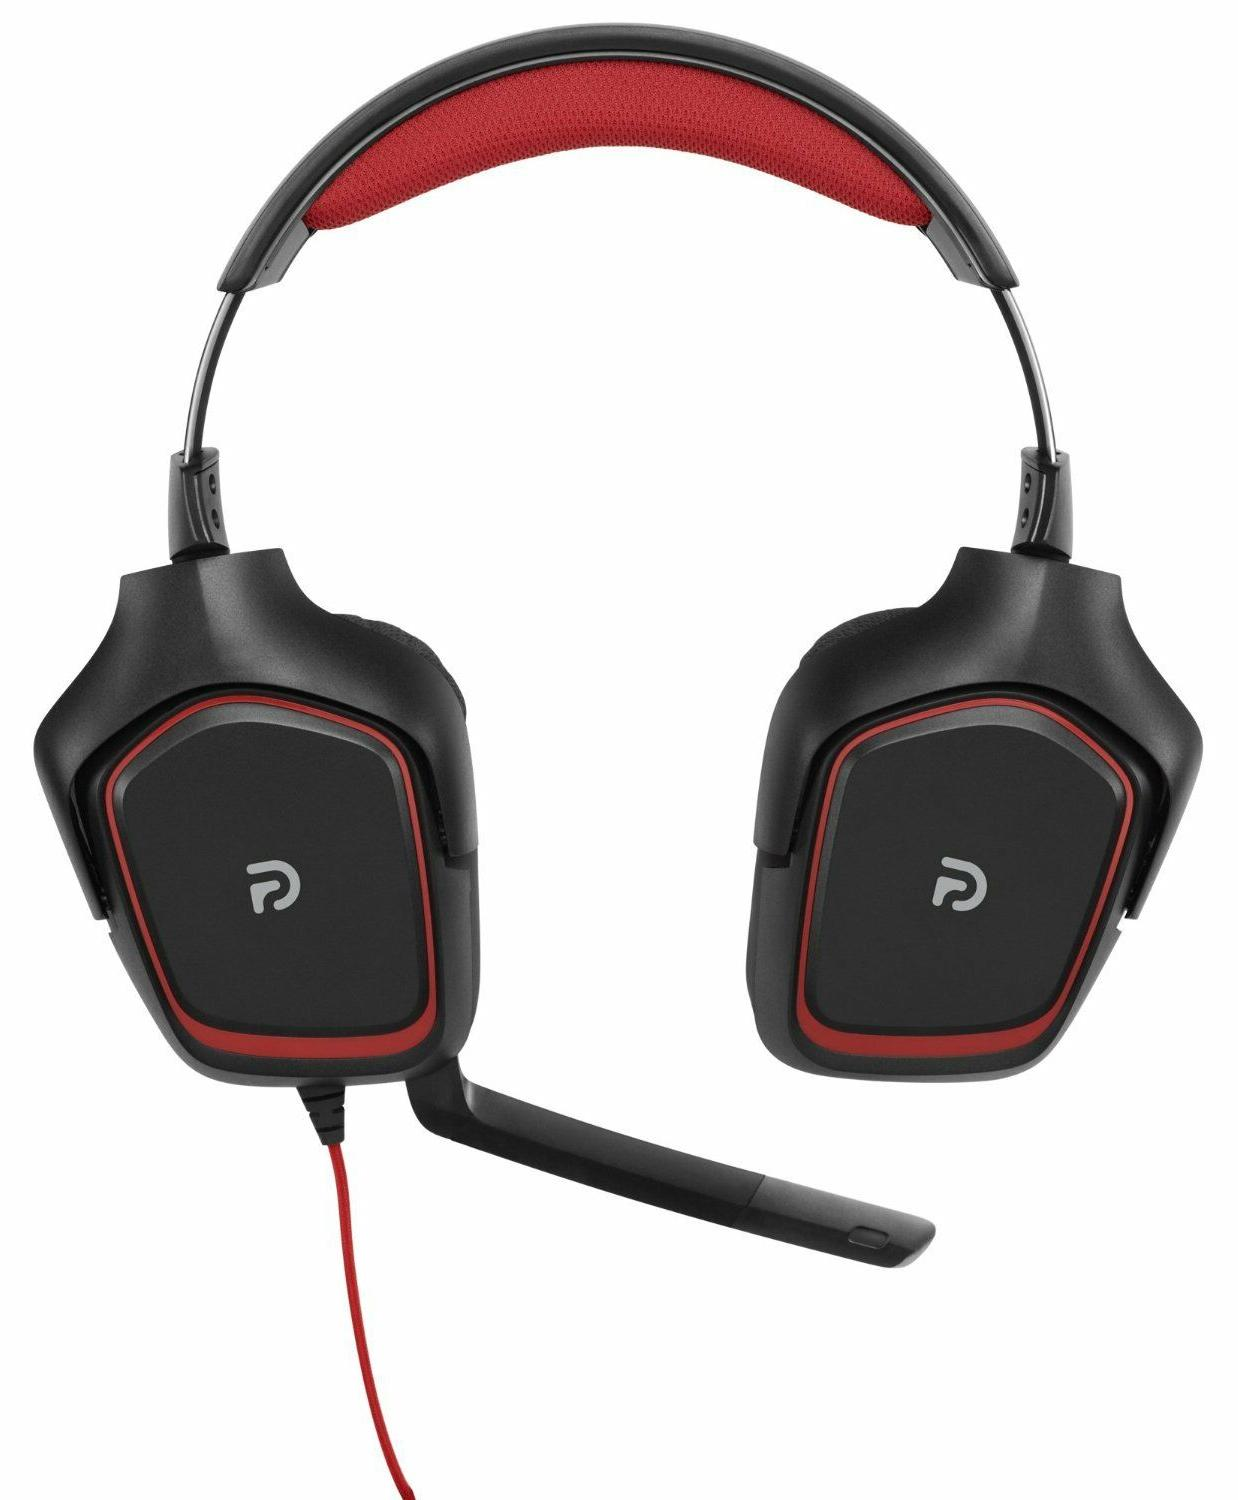 N Logitech Gaming Noise-cancelling Wired Headset